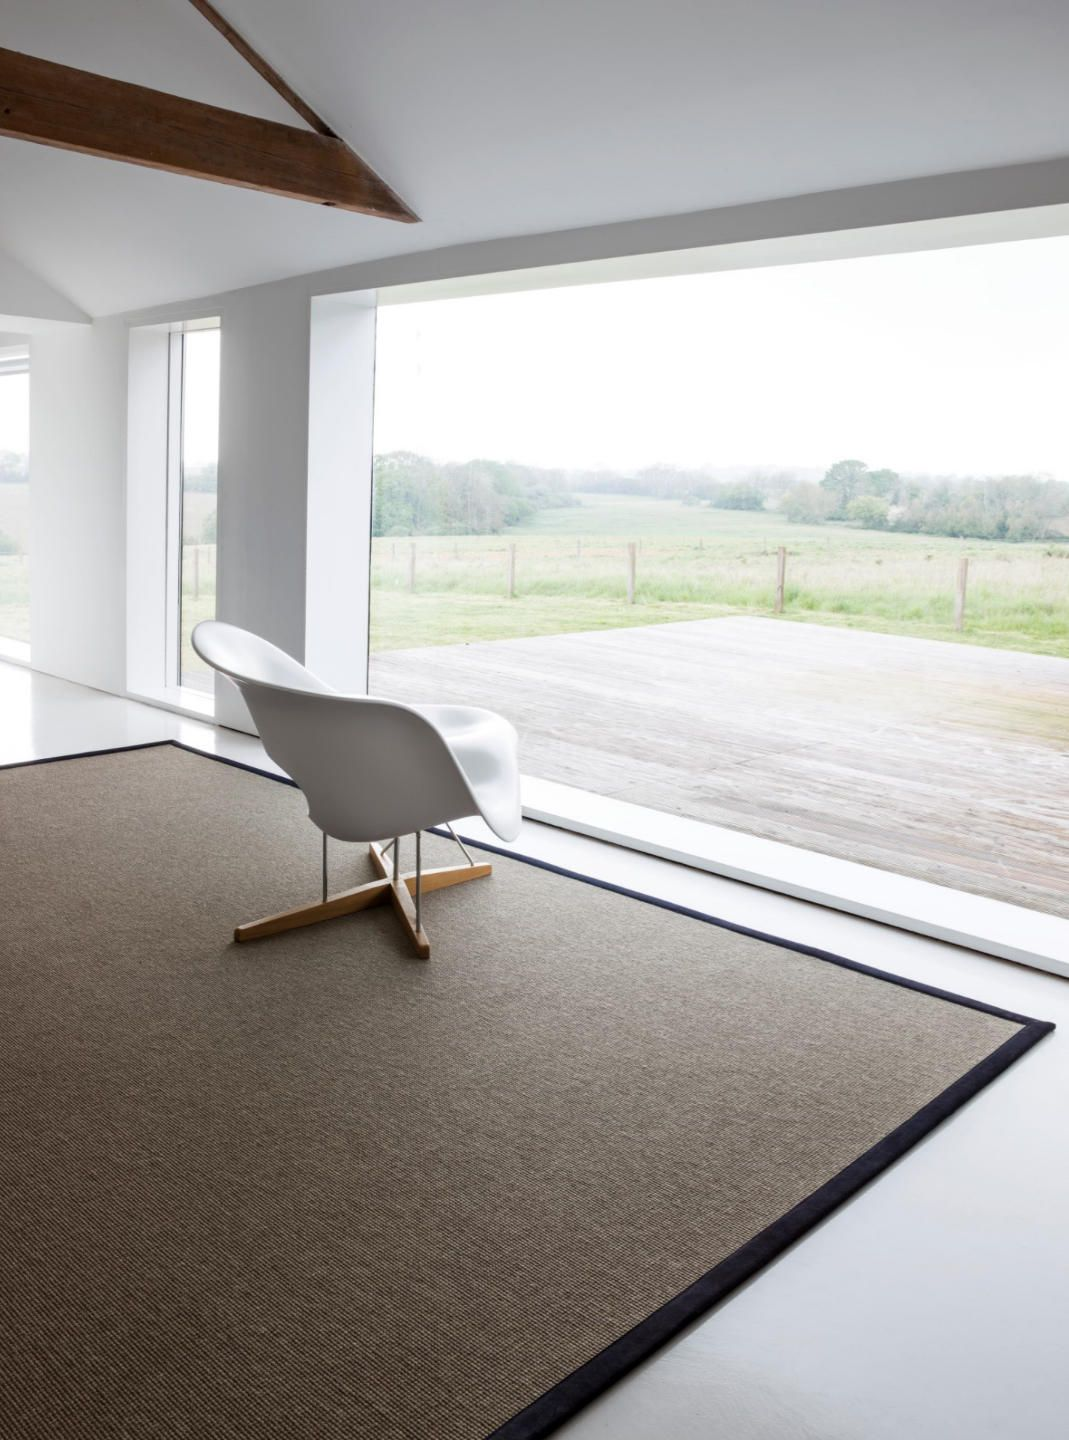 Bespoke Rug From Crucial Trading Ideal For Lounge Or Dining Room Custom Made To Fit Your Theruge Co Uk